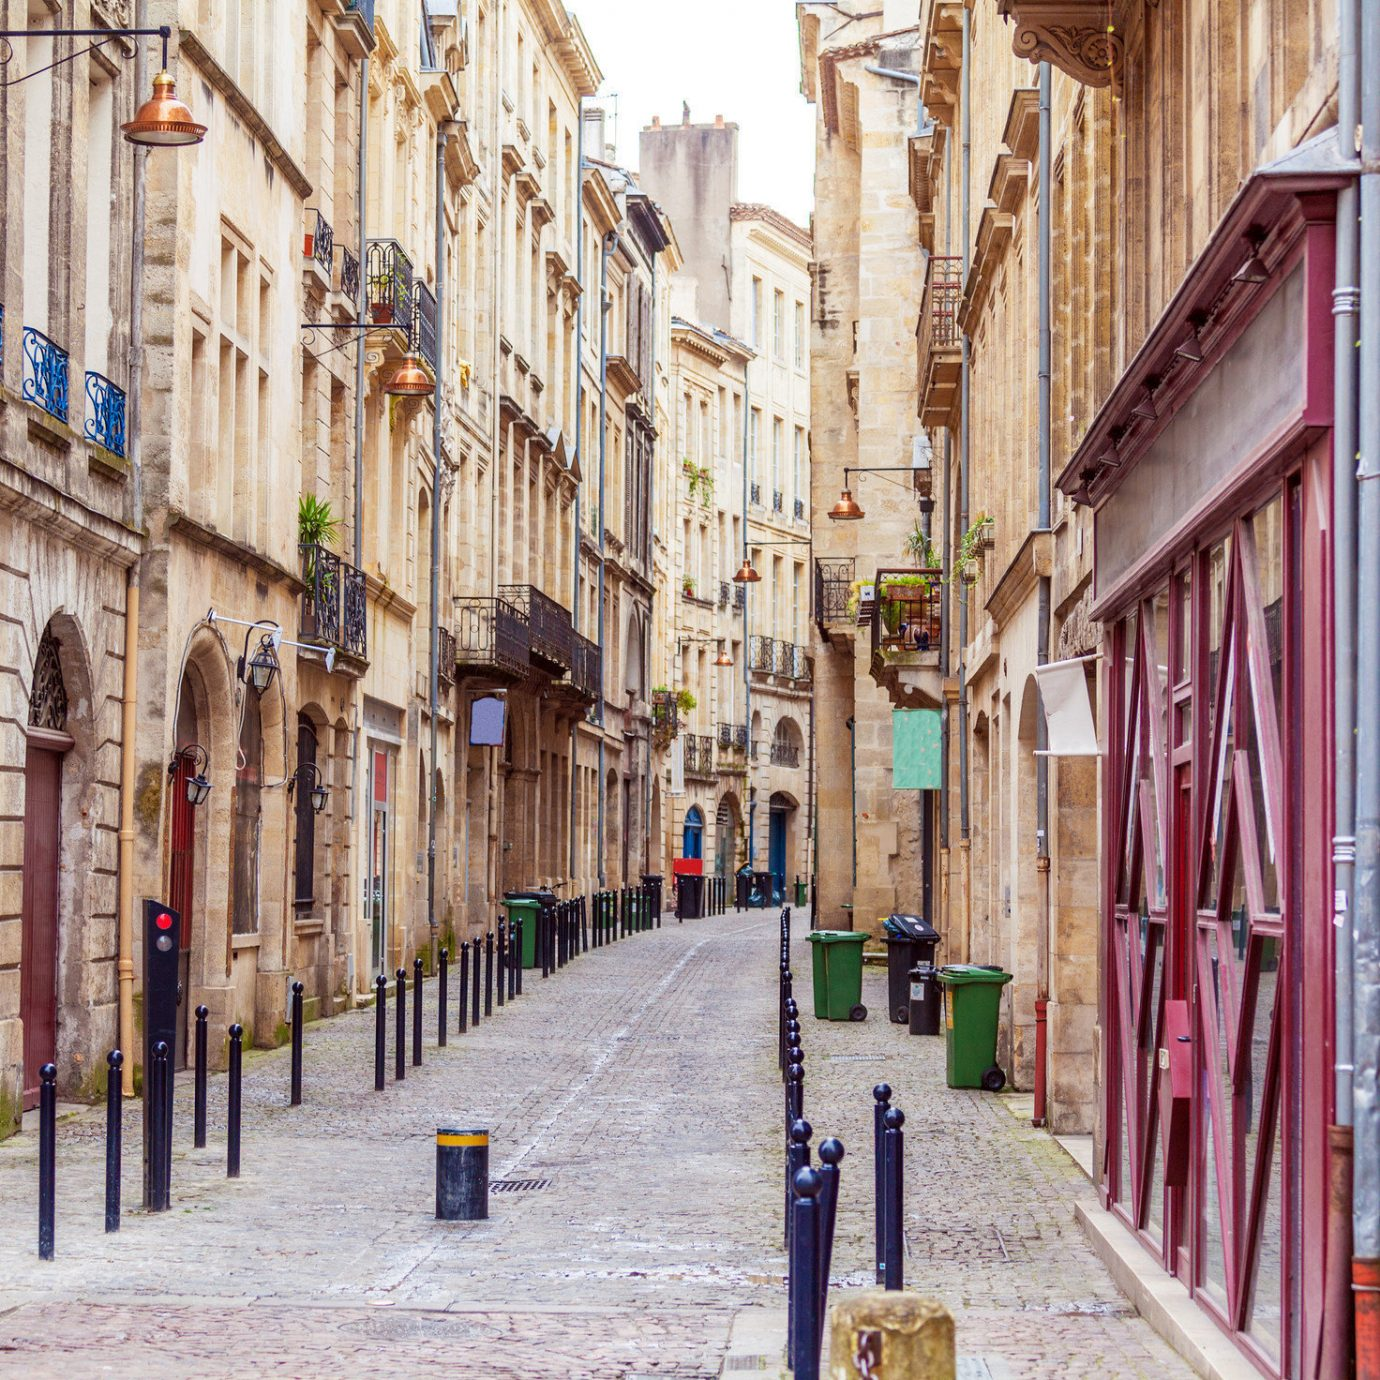 building way color sidewalk road alley Town street scene neighbourhood City lane infrastructure cityscape ancient history stone